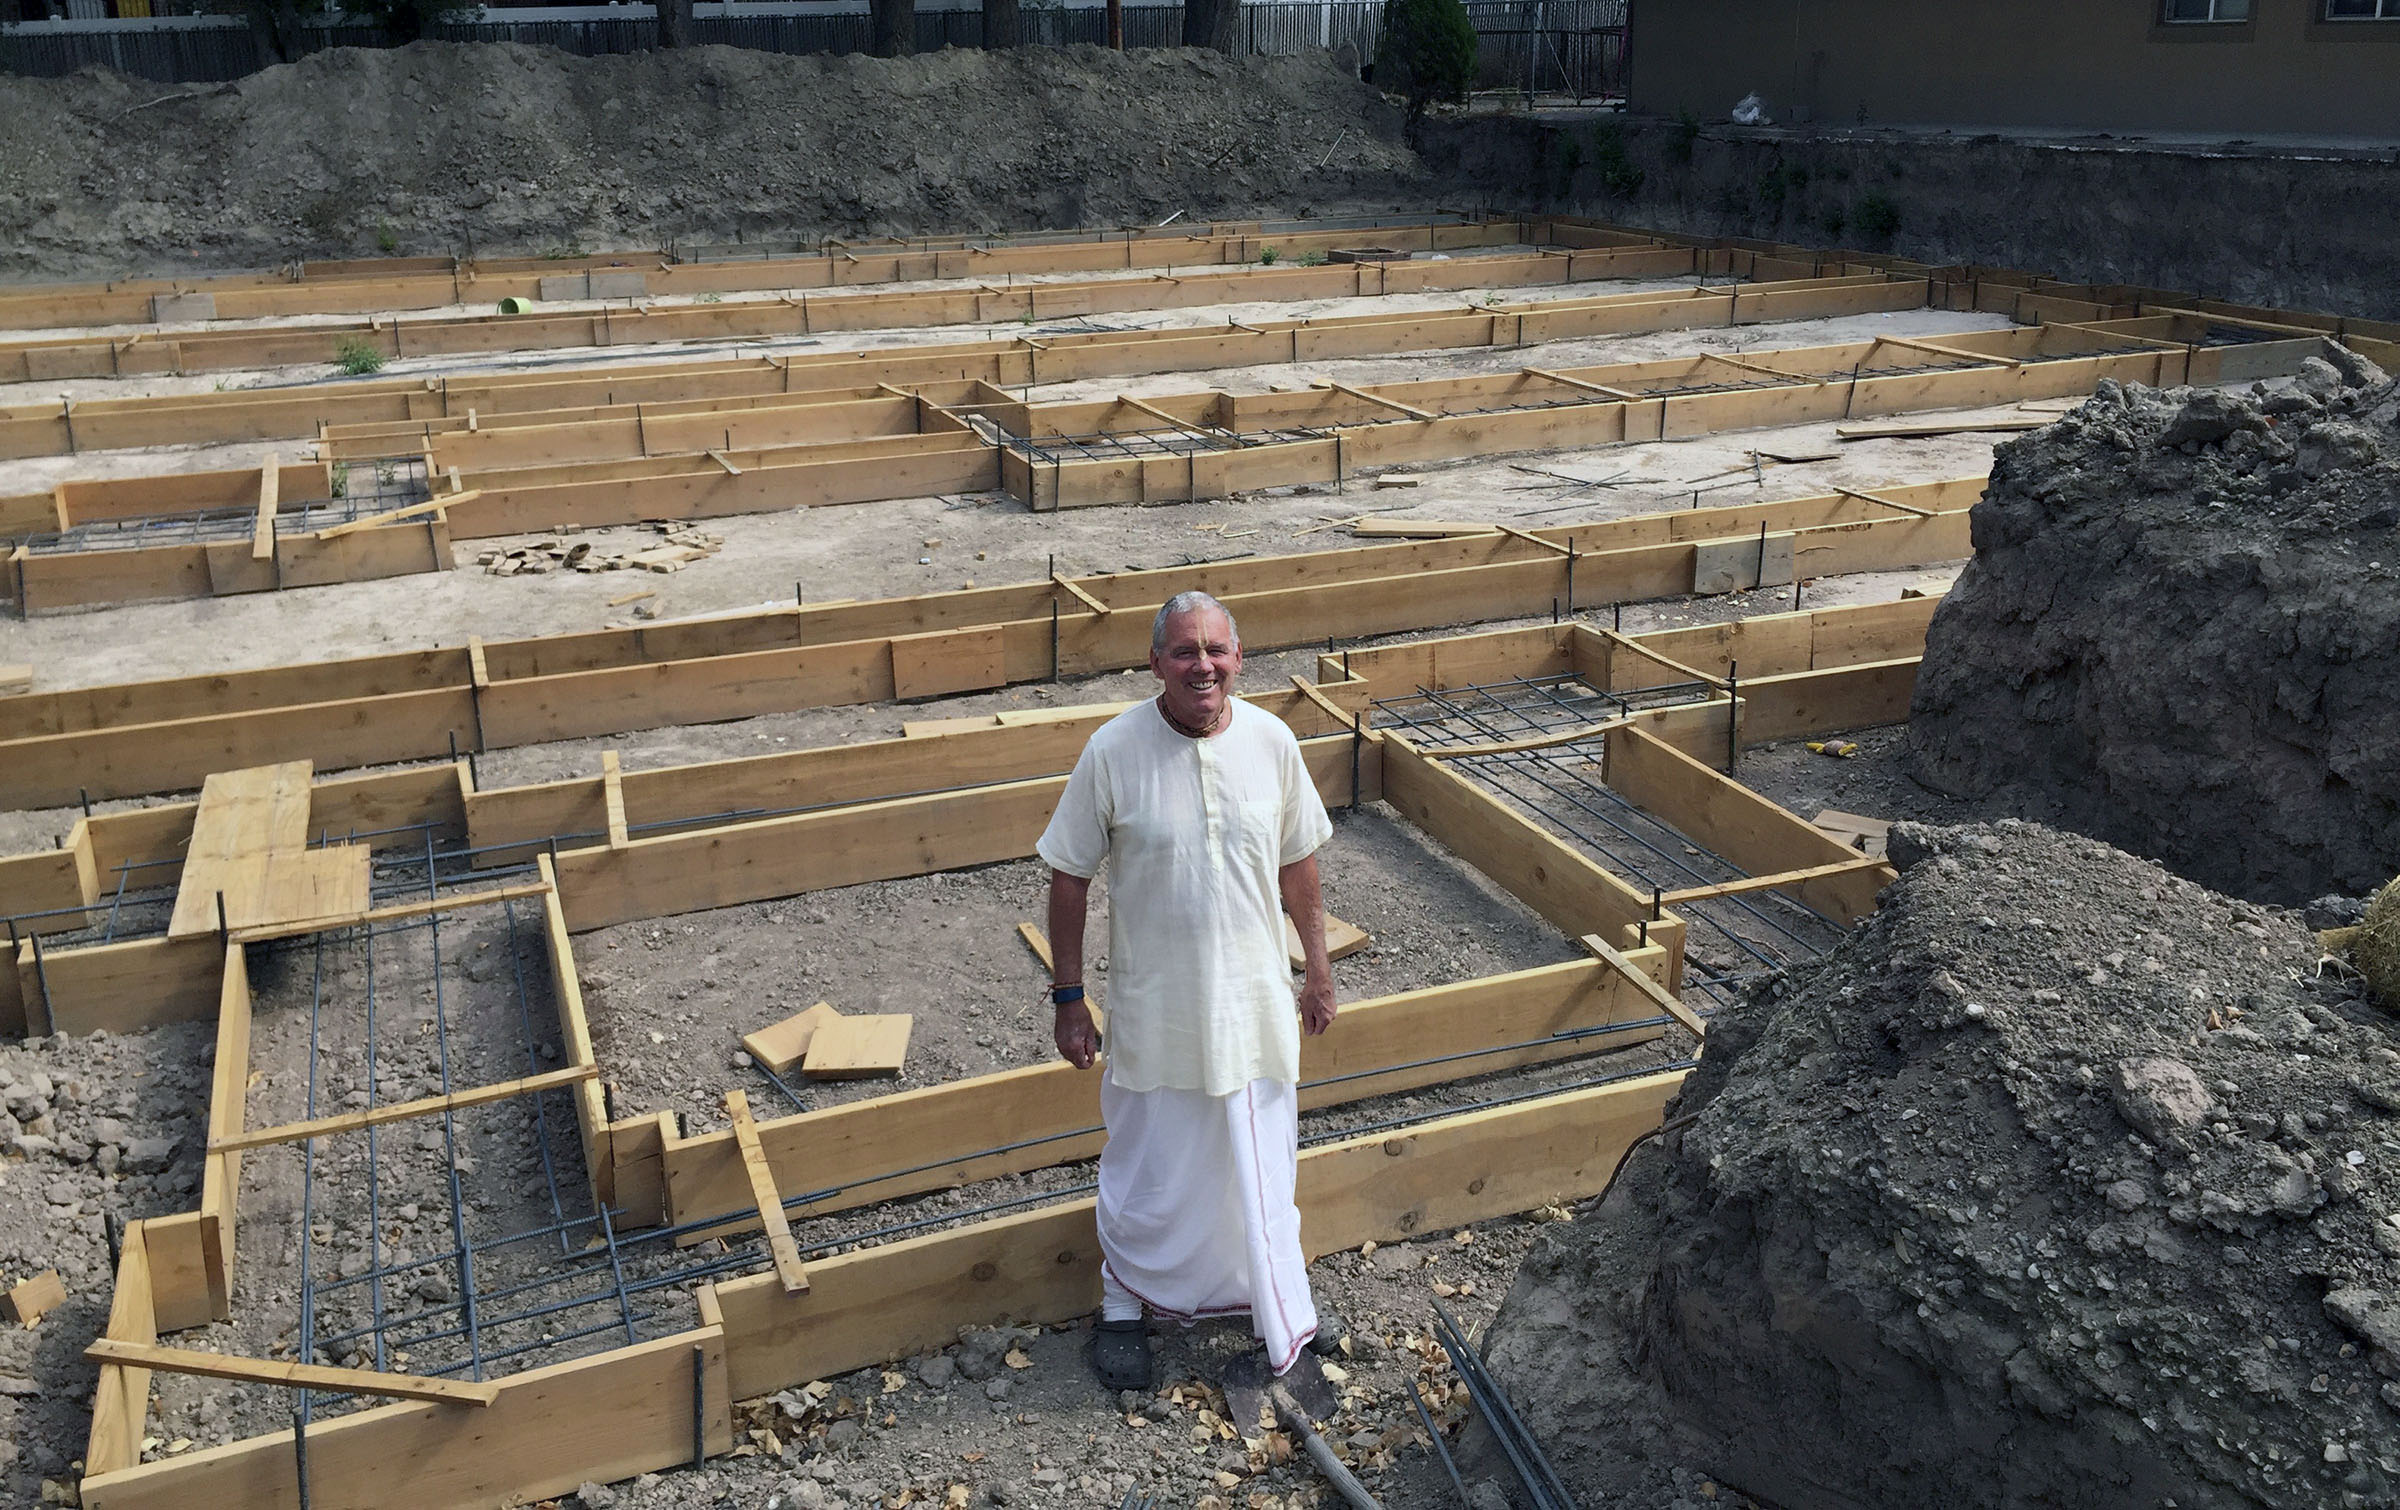 In this Aug. 4, 2016 photo, Caru Das, Utah Hare Krishna leader,poses at the construction site for the Salt Lake City Krishna Temple in Salt Lake City. (AP Photo)